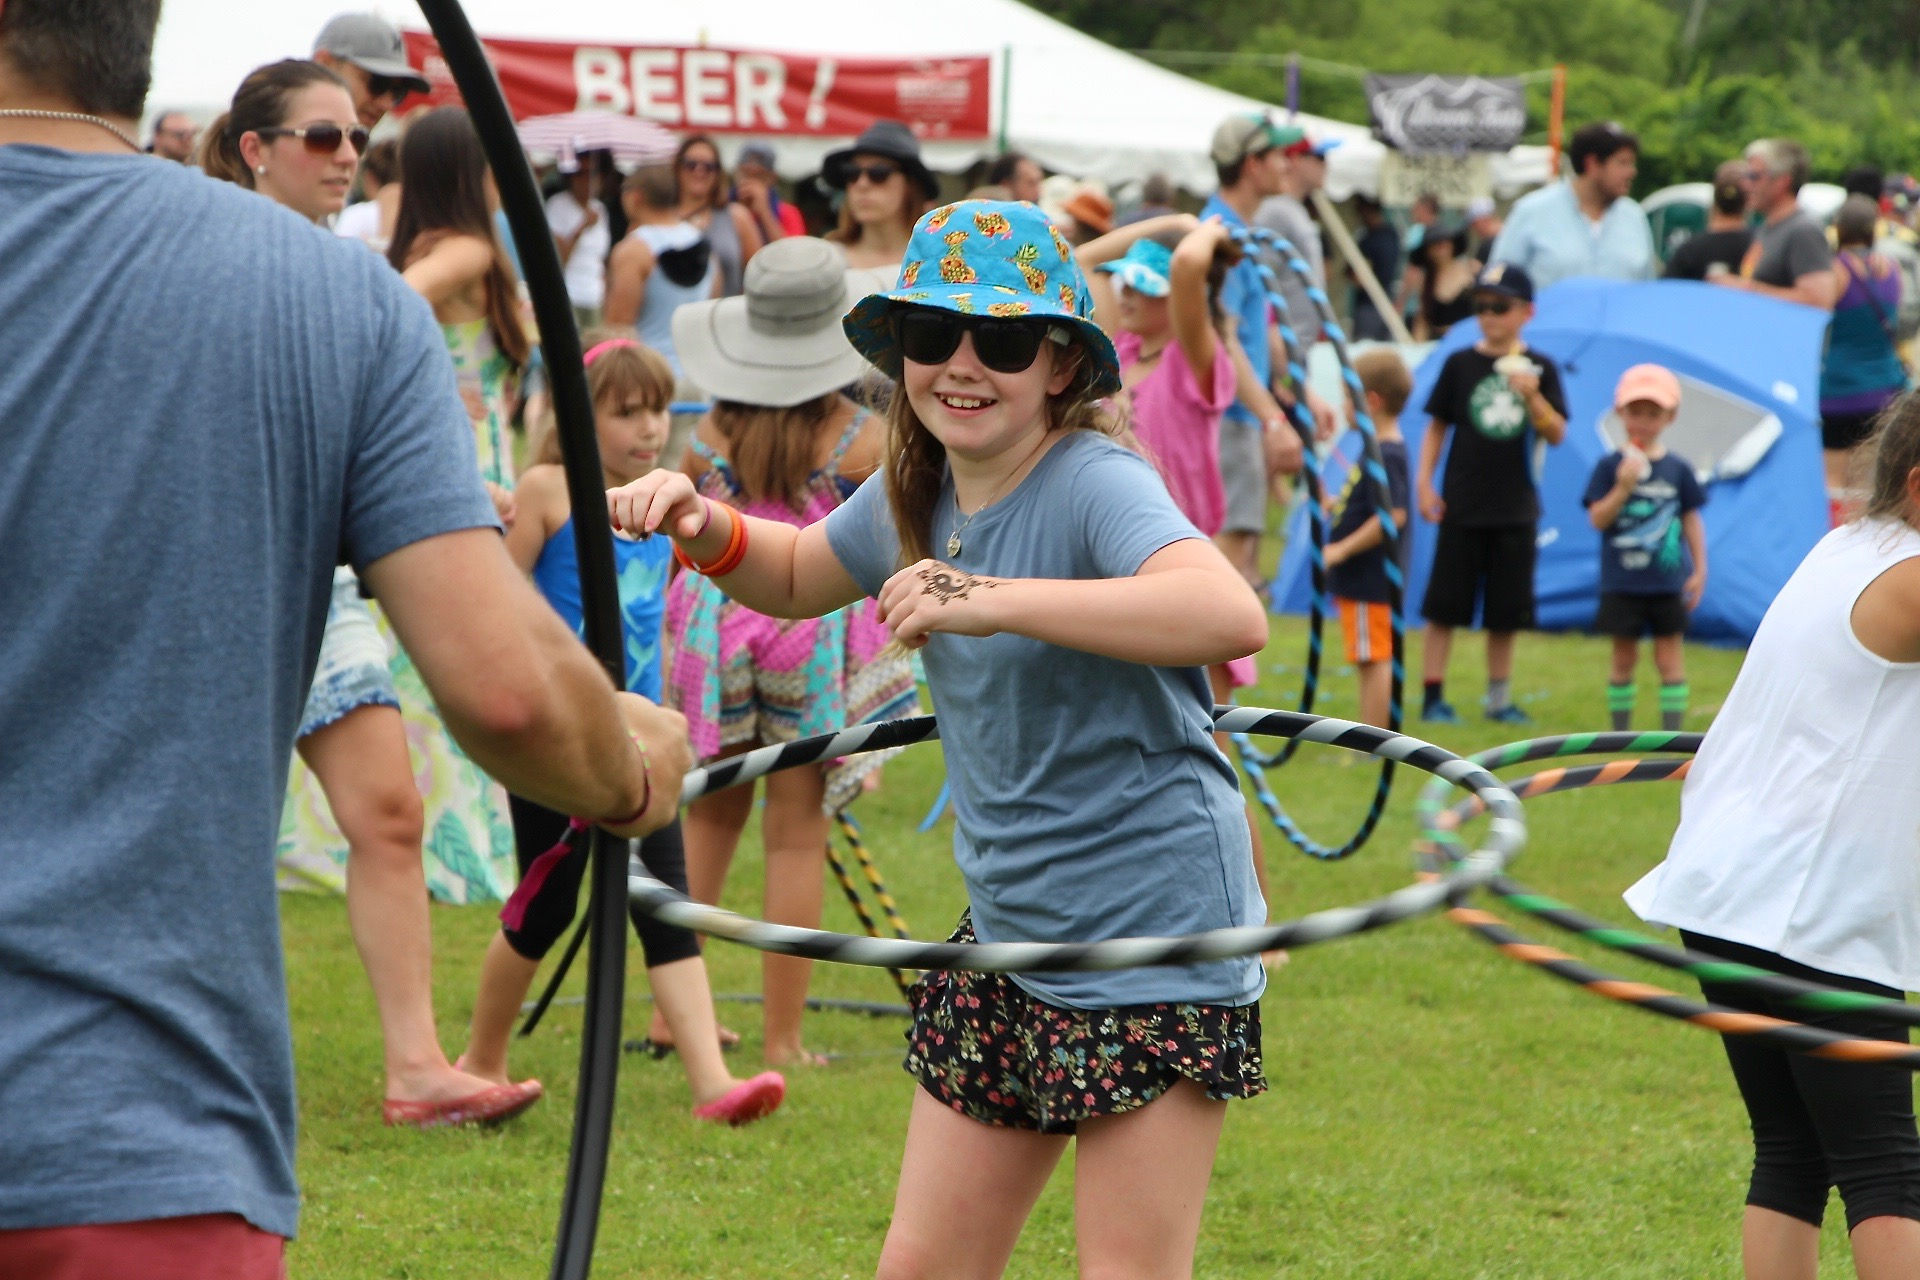 Skylar Laws hula hoops during Green River Festival on July 14, 2018.